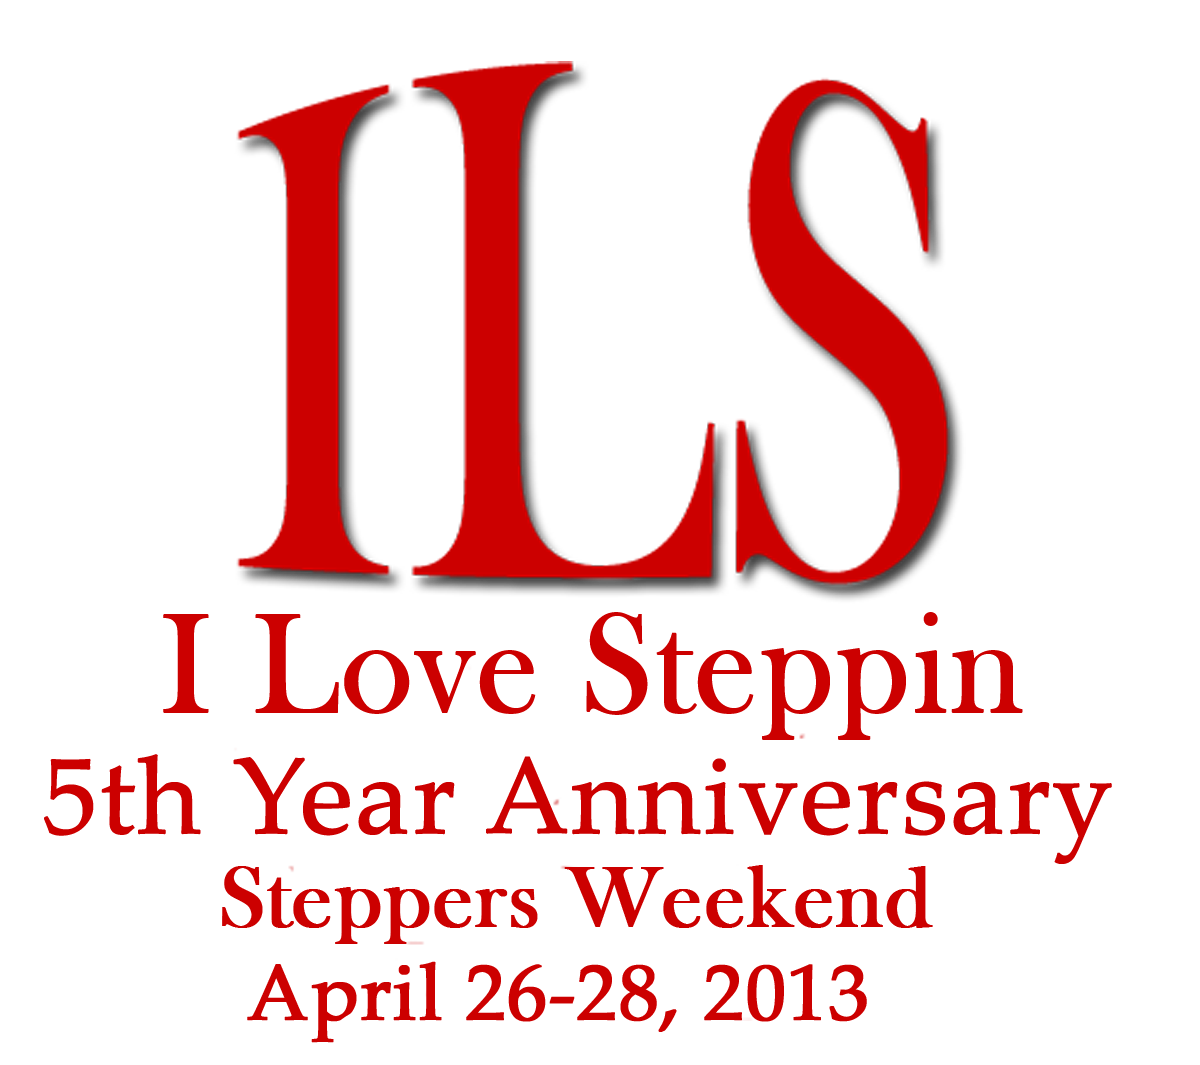 41 Year Anniversary Quotes: Five Year Anniversary Quotes. QuotesGram